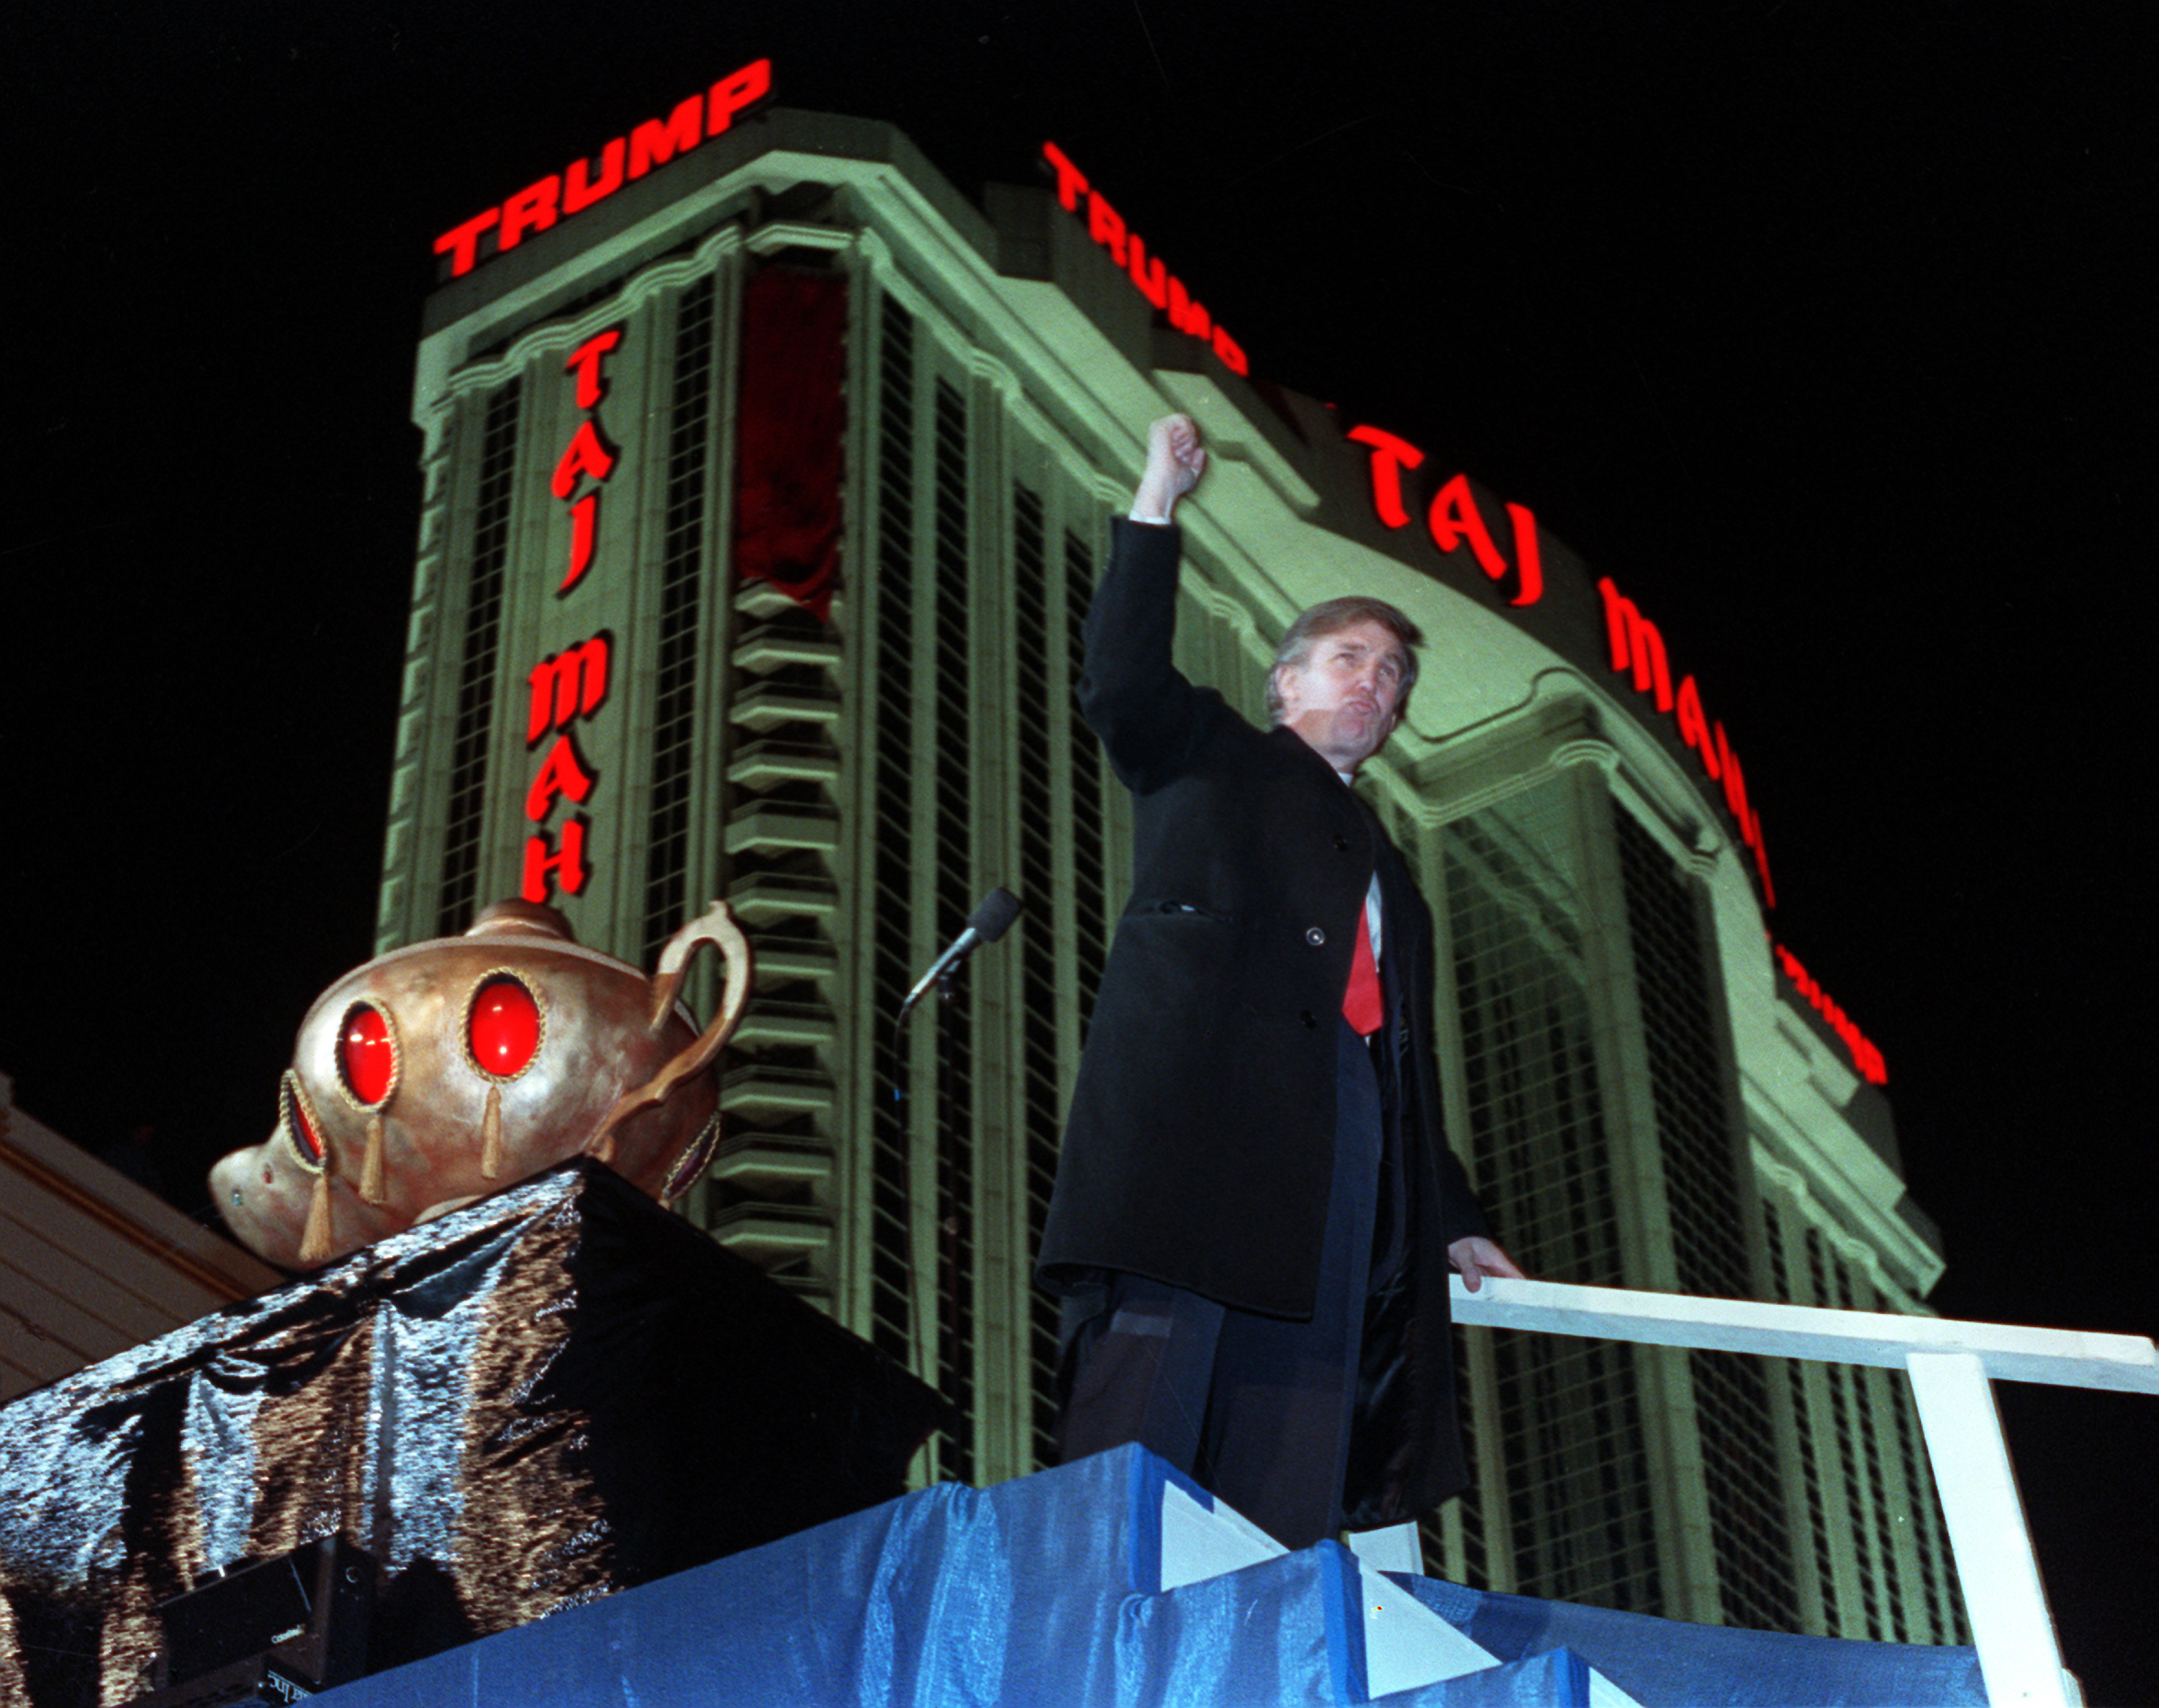 Donald Trump ascends the stairs with his fist raised from the genie's lamp after opening the Trump Taj Mahal Casino Resort in a spectacular show of fireworks and laser lights in Atlantic City, N.J., on April 5, 1990.  Behind Trump is the 42-story hot...